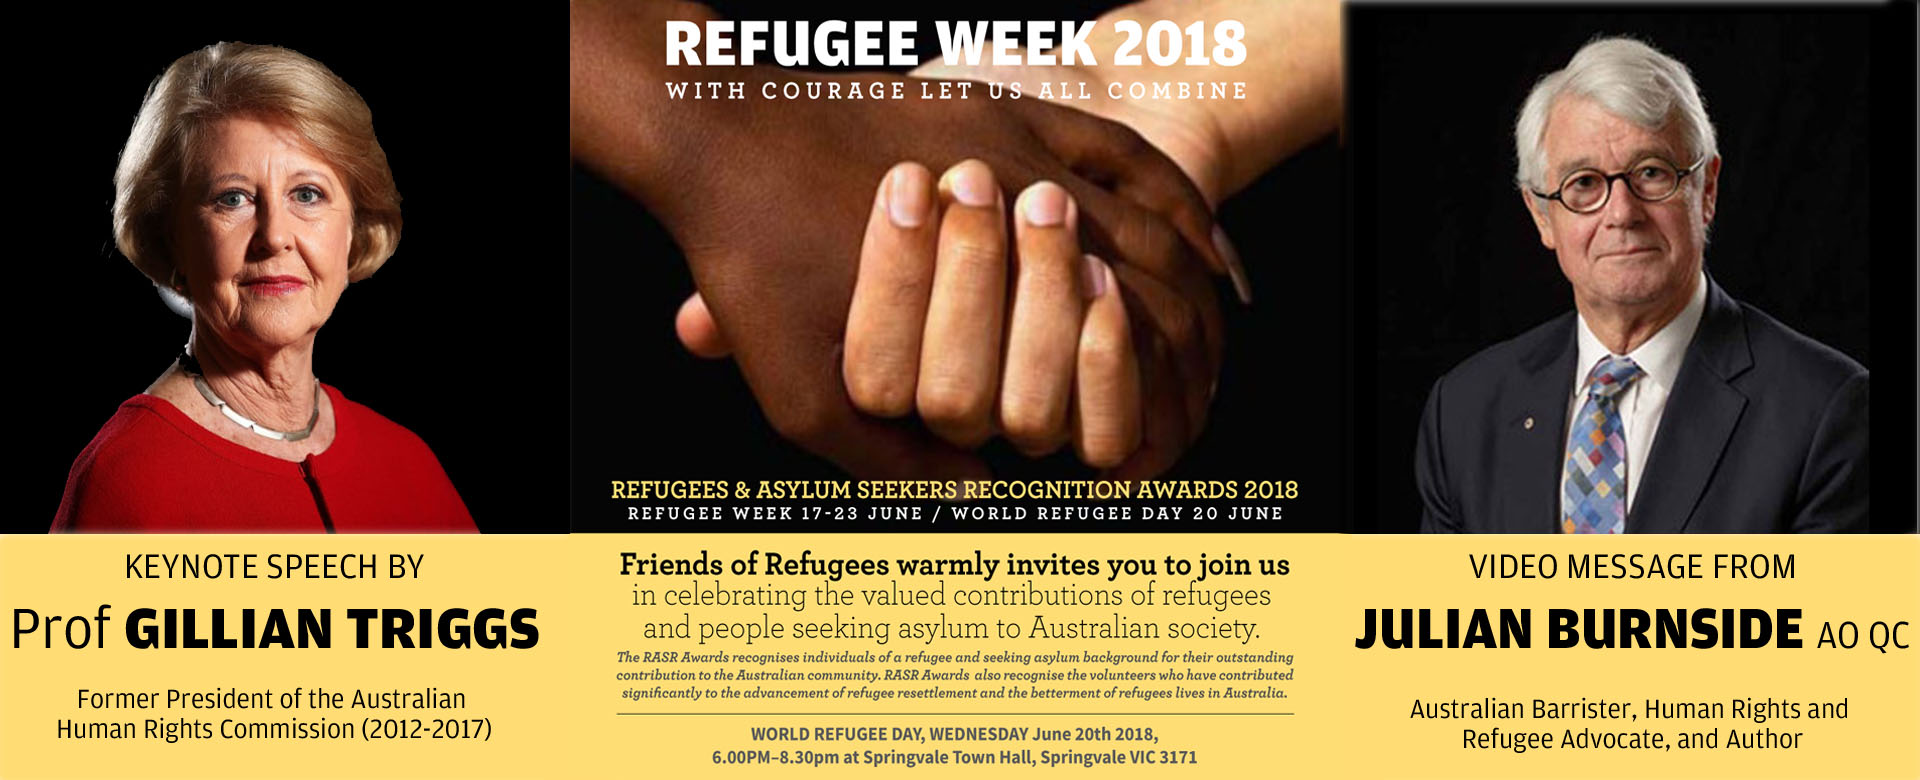 REFUGEE WEEK 2018-REFUGEE AND ASYLUM SEEKER RECOGNITION AWARDS 2018